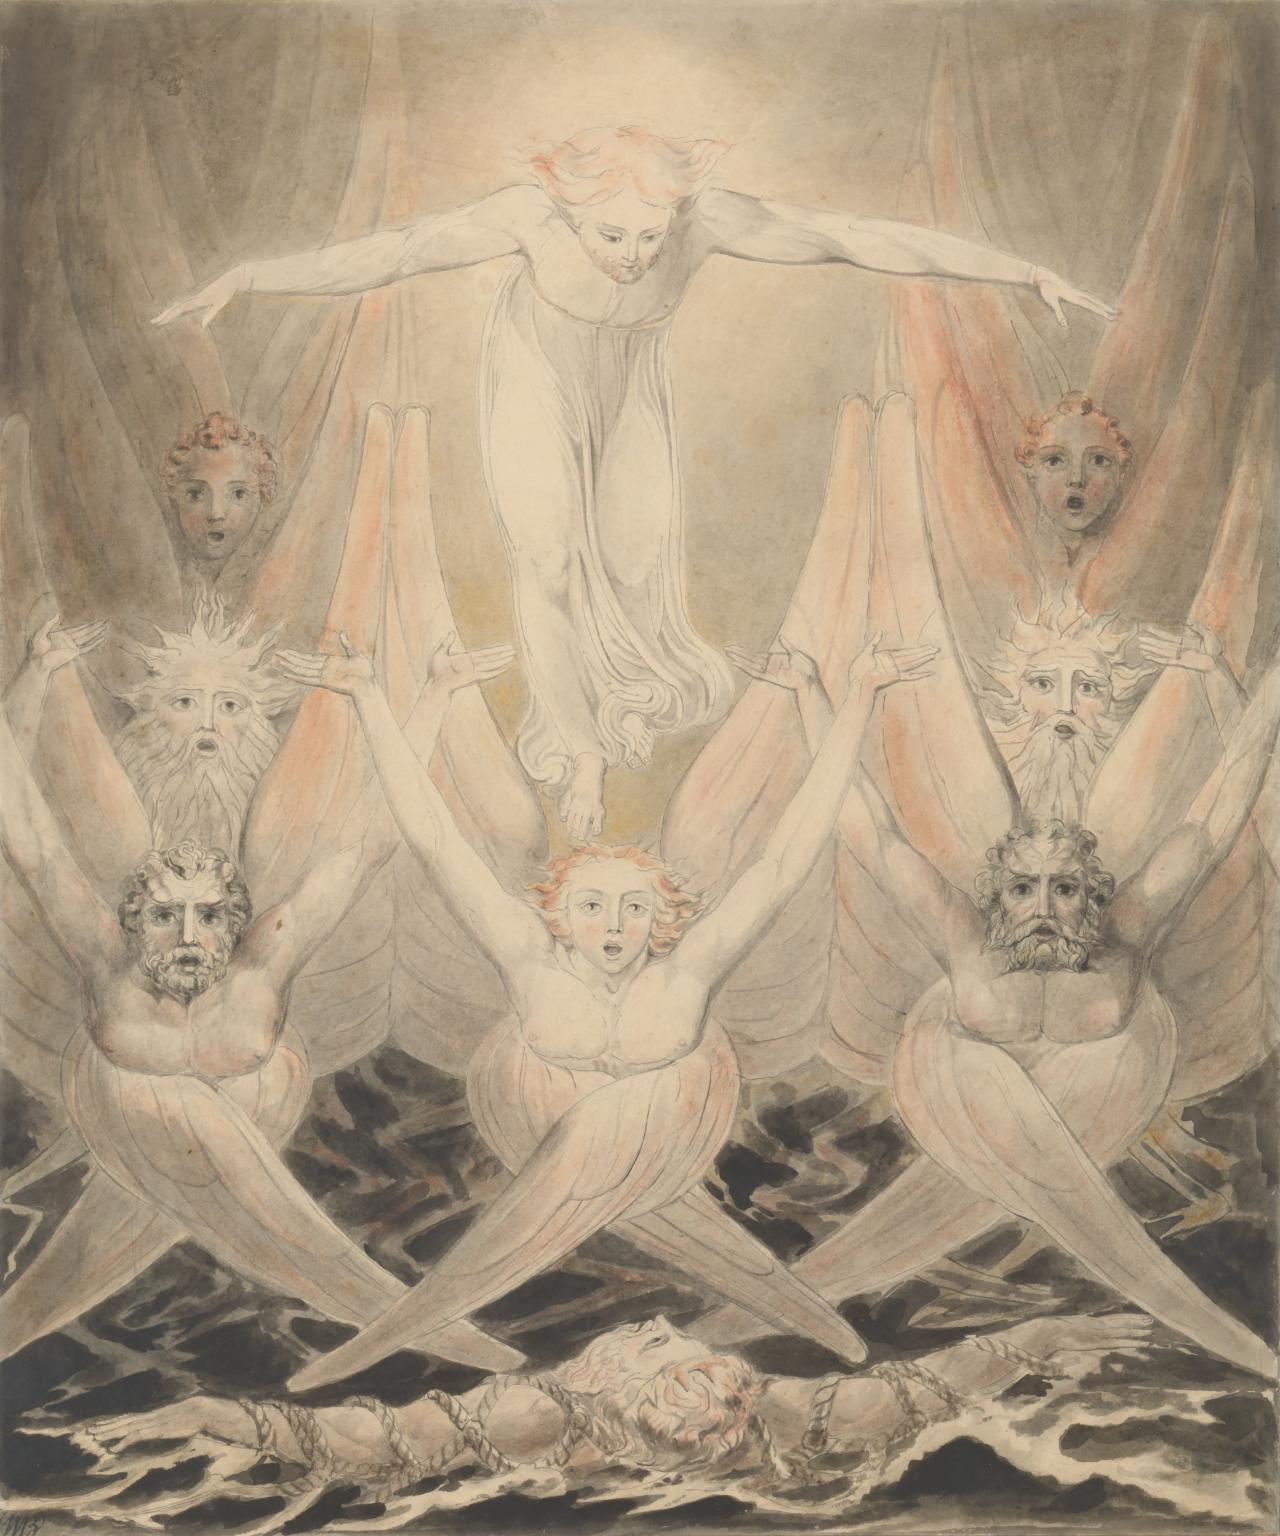 David Delivered out of Many Waters c.1805 by William Blake 1757-1827